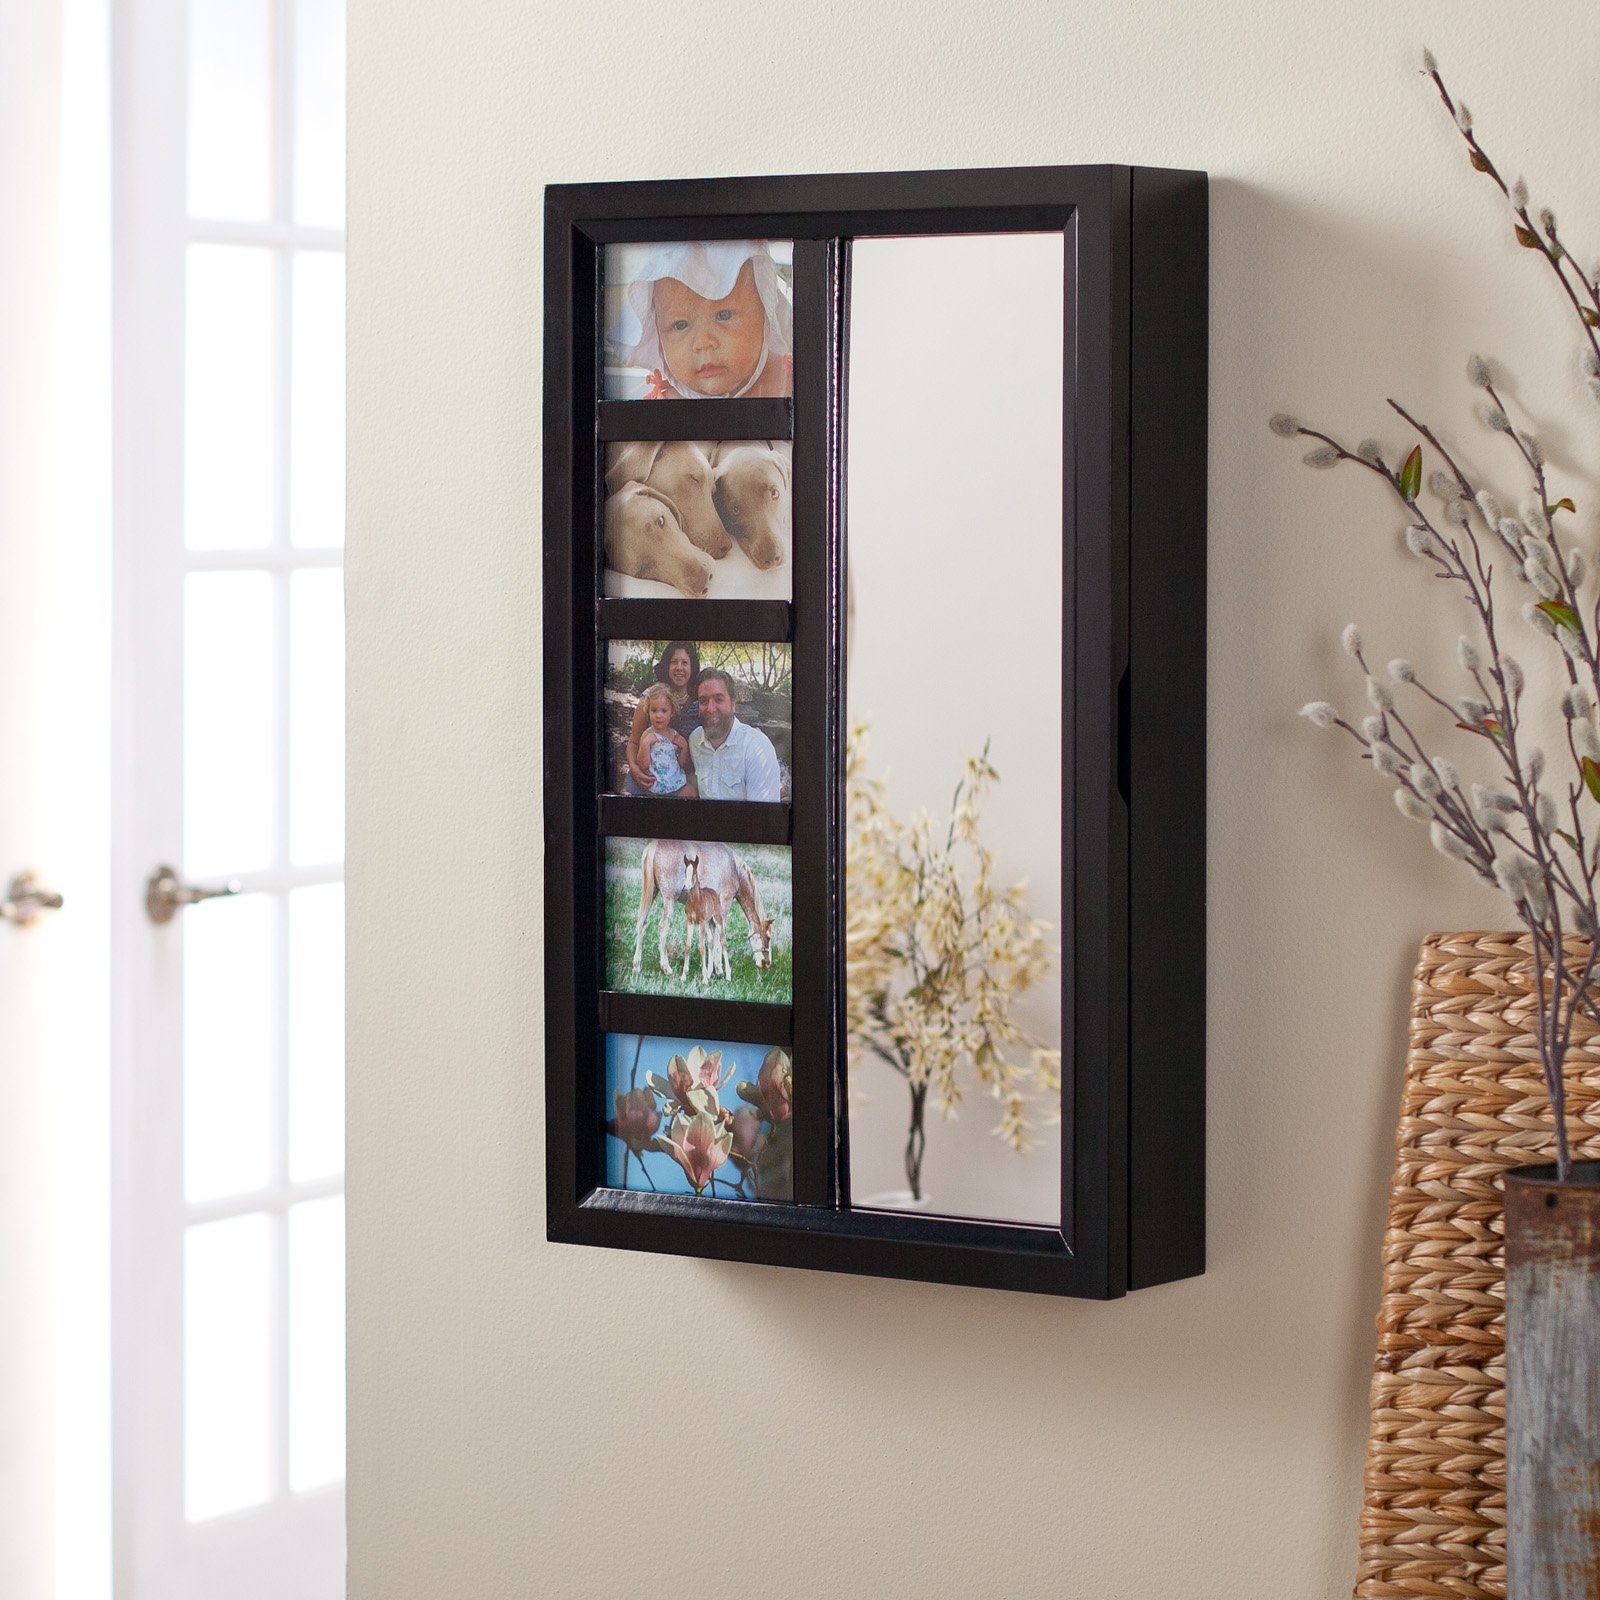 Wall Mirror Jewelry Box collage photo frame wooden wall locking jewelry armoire - 23w x